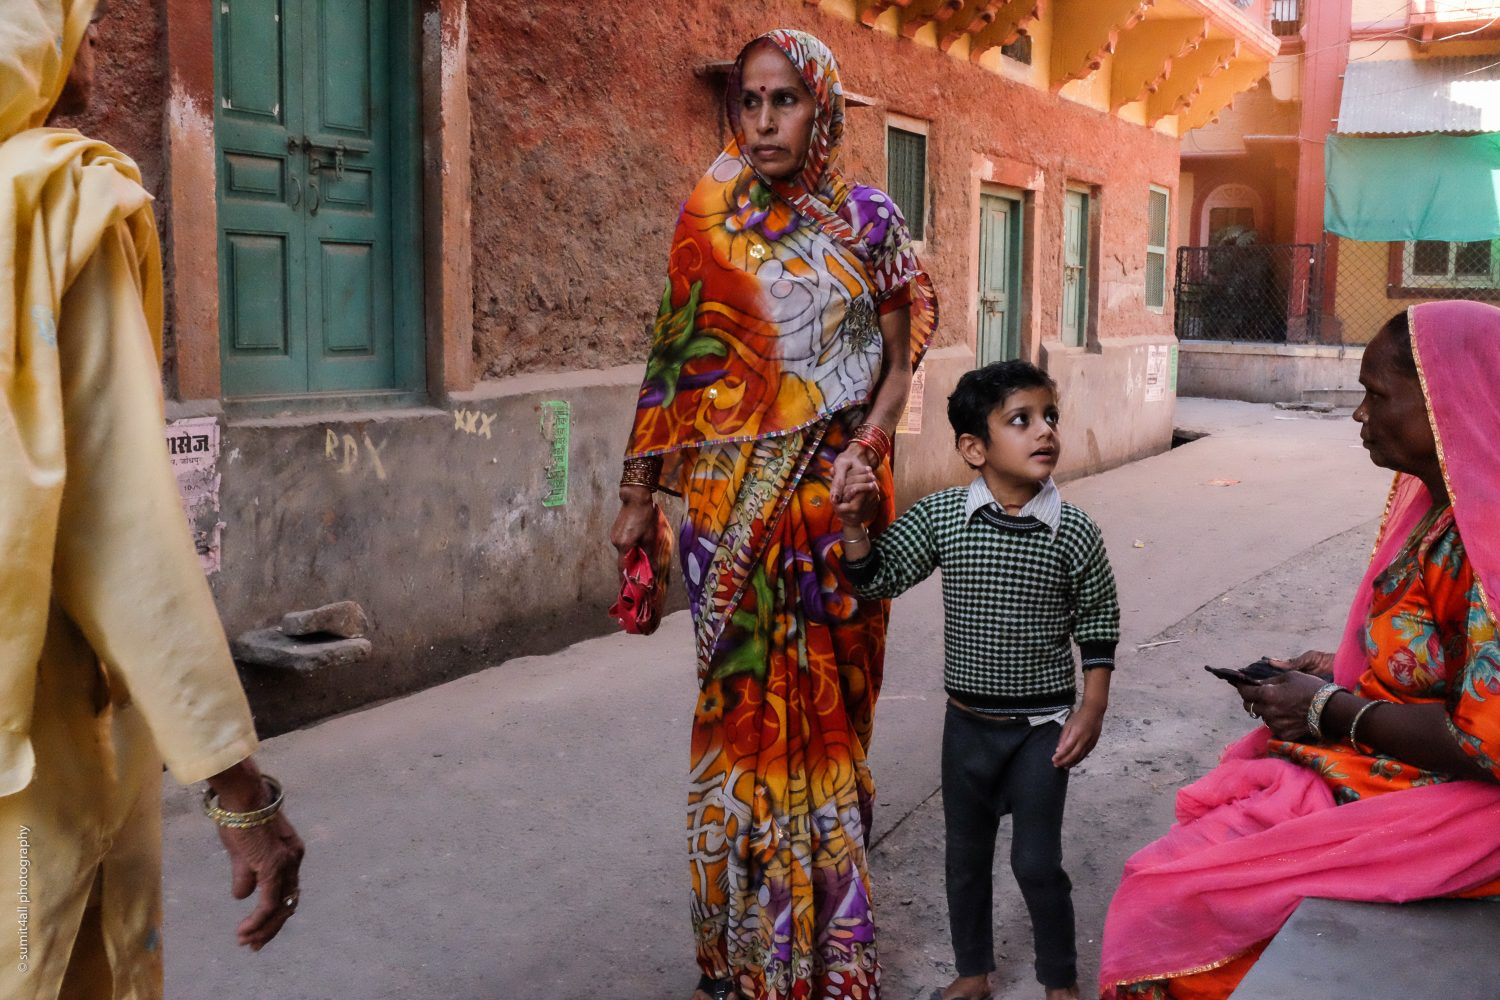 Colorful clothes of locals in Jodhpur, India